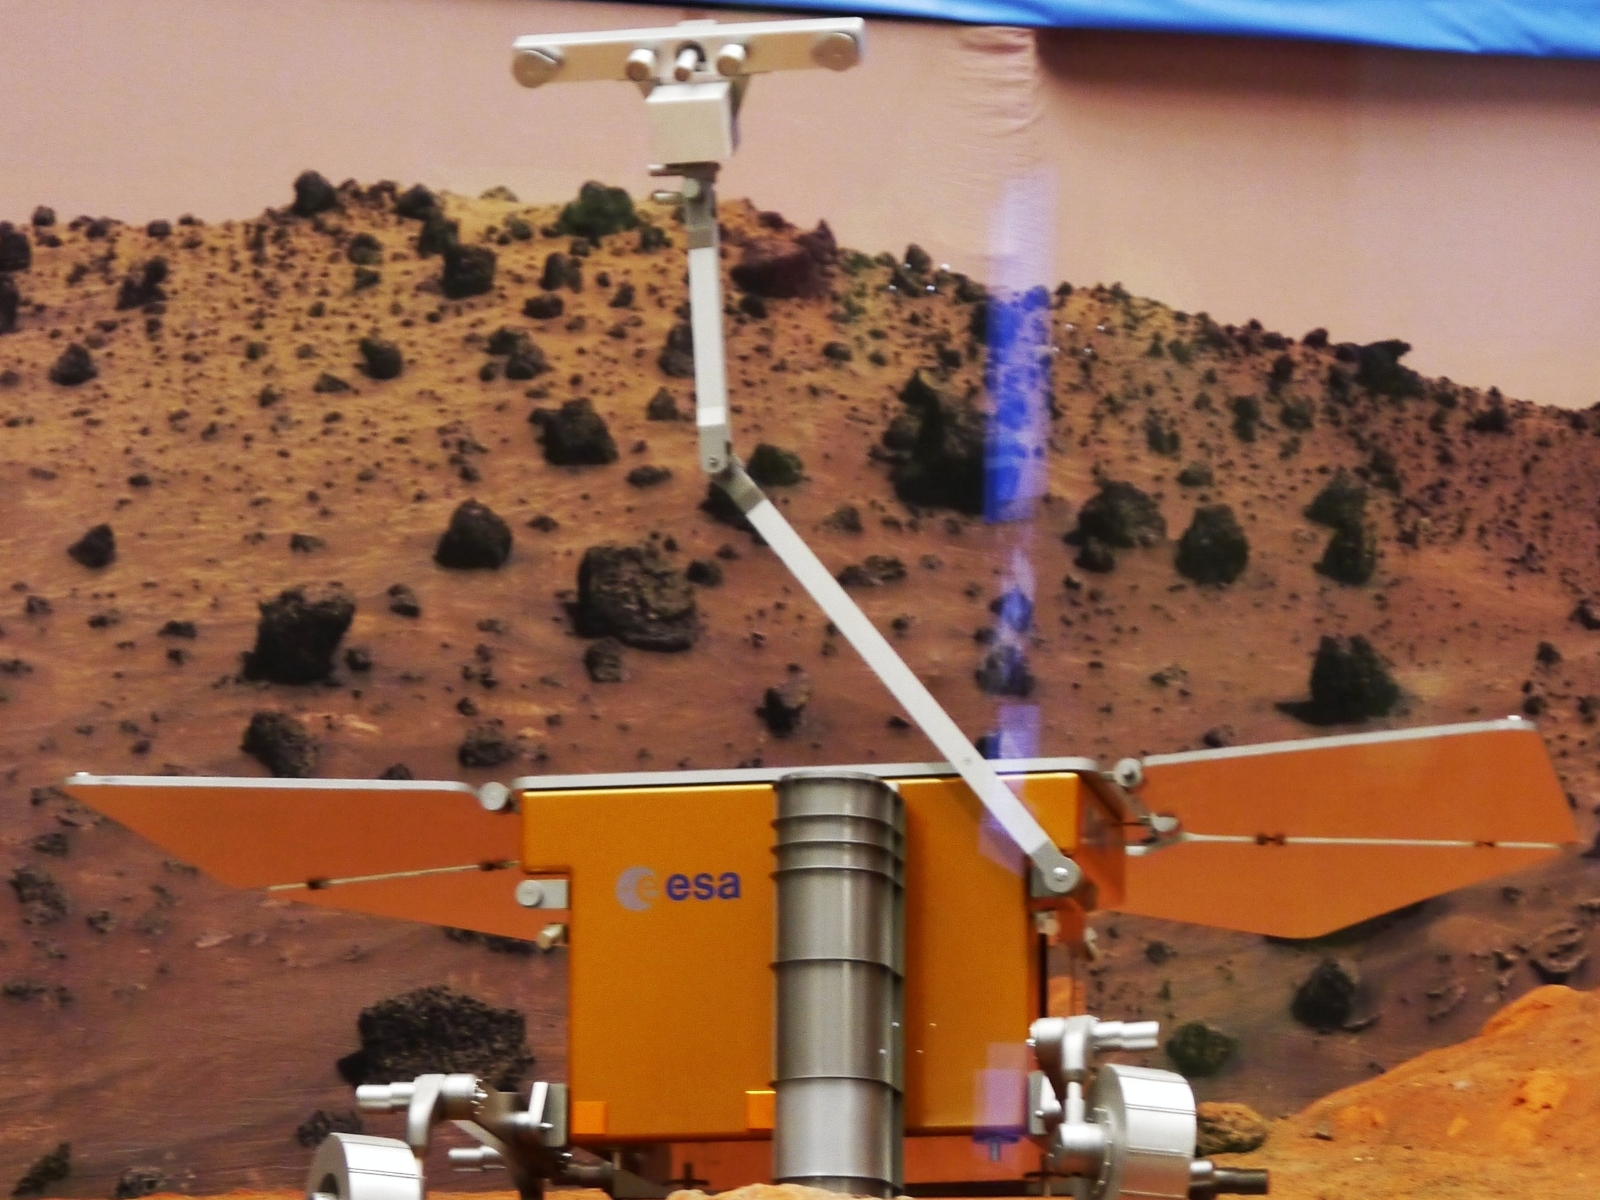 One of the ExoMars rover prototypes zooming around.